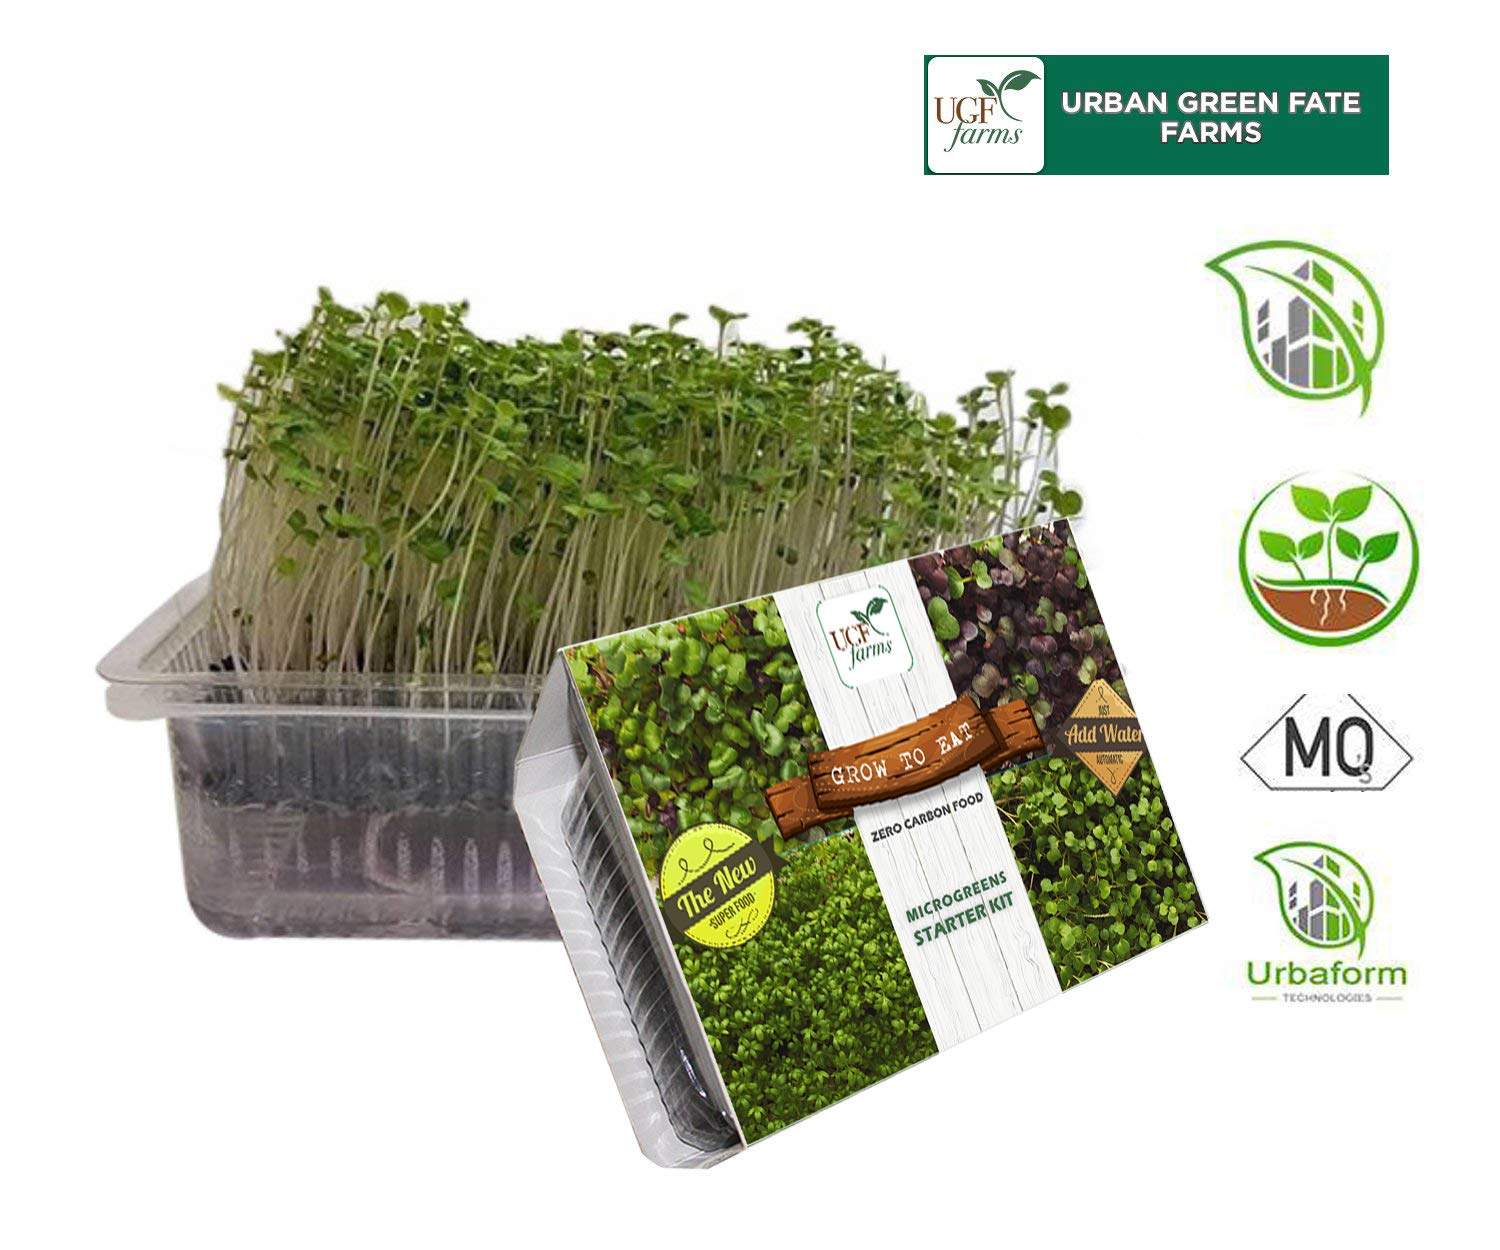 Ugf Farms Garden Cress Microgreen Soilless Organic Plant Seeds